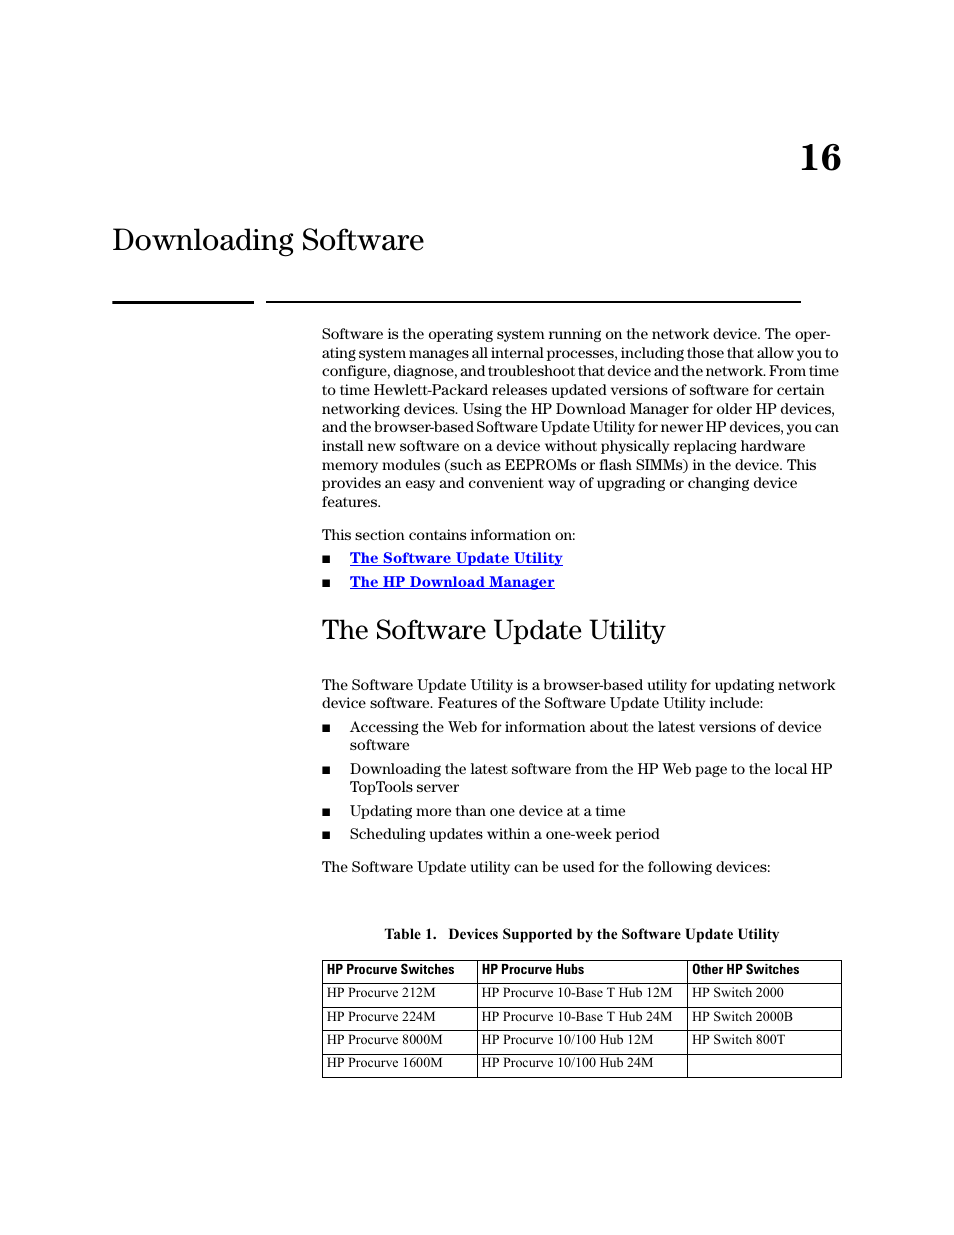 Downloading software, The software update utility, 16